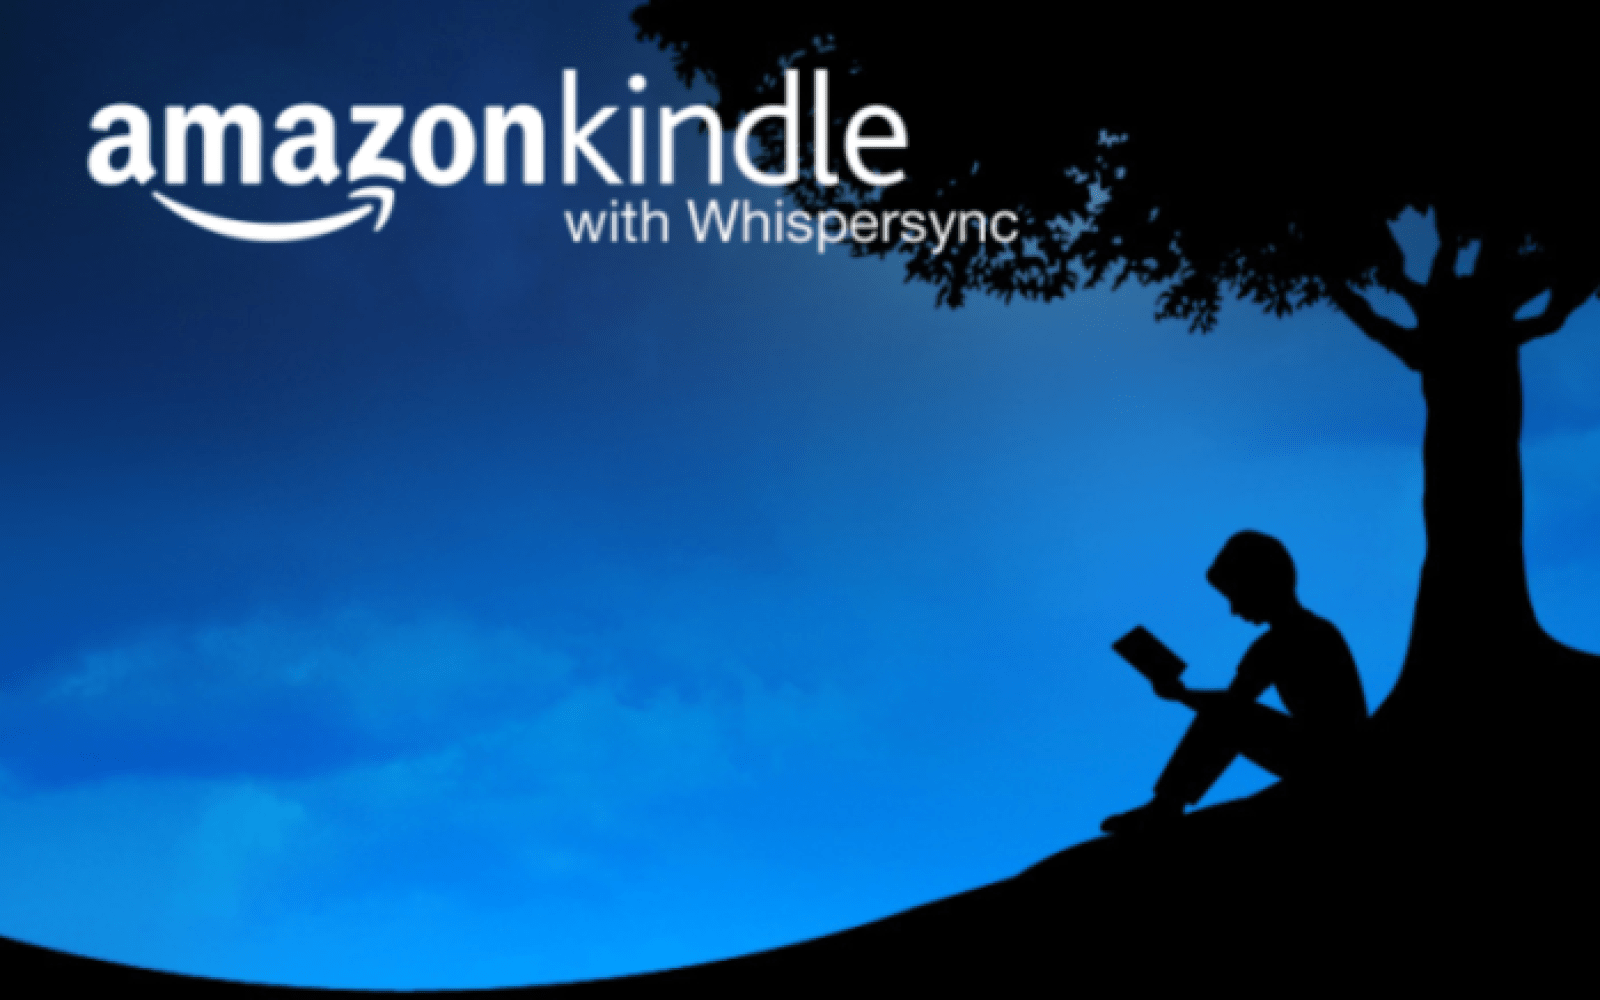 Select eBooks starting at $1 from the Amazon Kindle Store